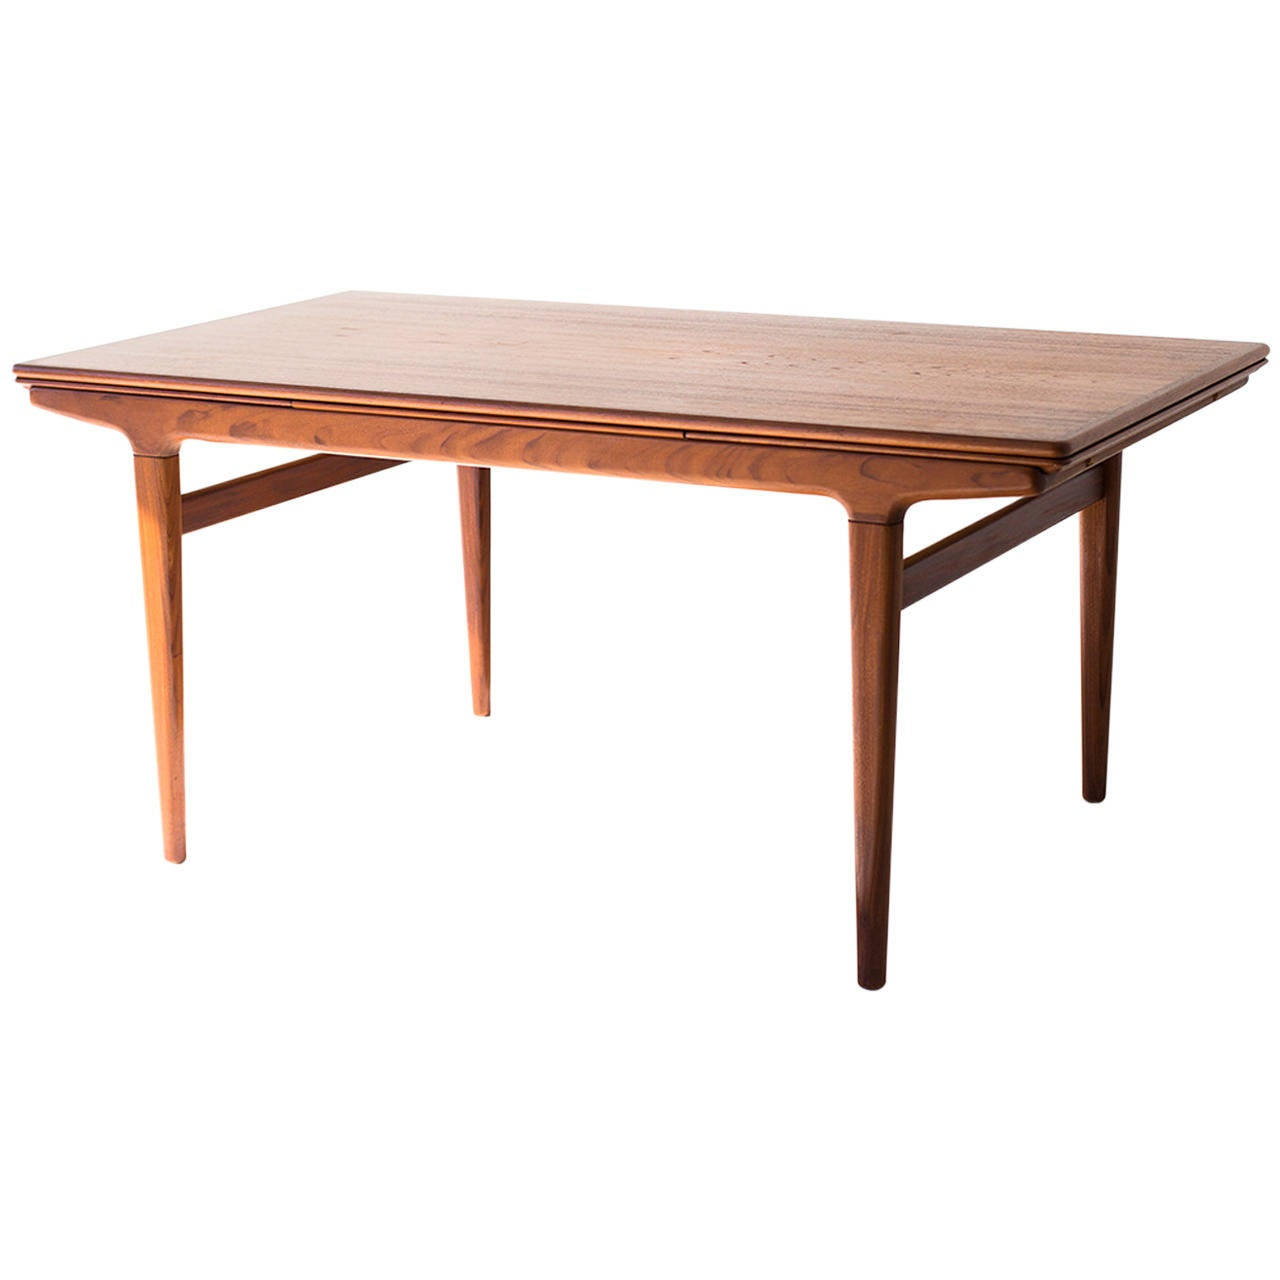 johannes andersen dining table for uldum møbelfabrik at 1stdibs